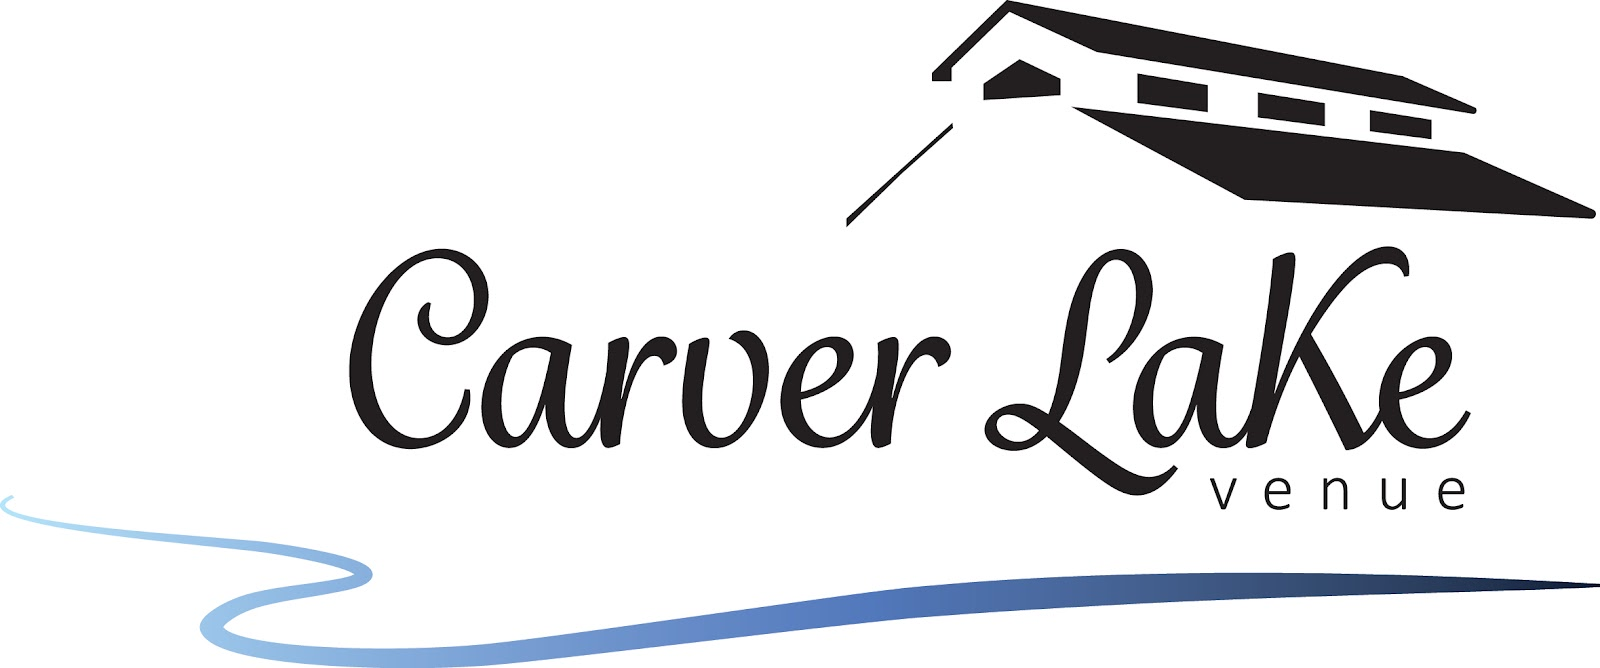 Carver_Lake_Venue_Logo_No_Background_Black.jpg